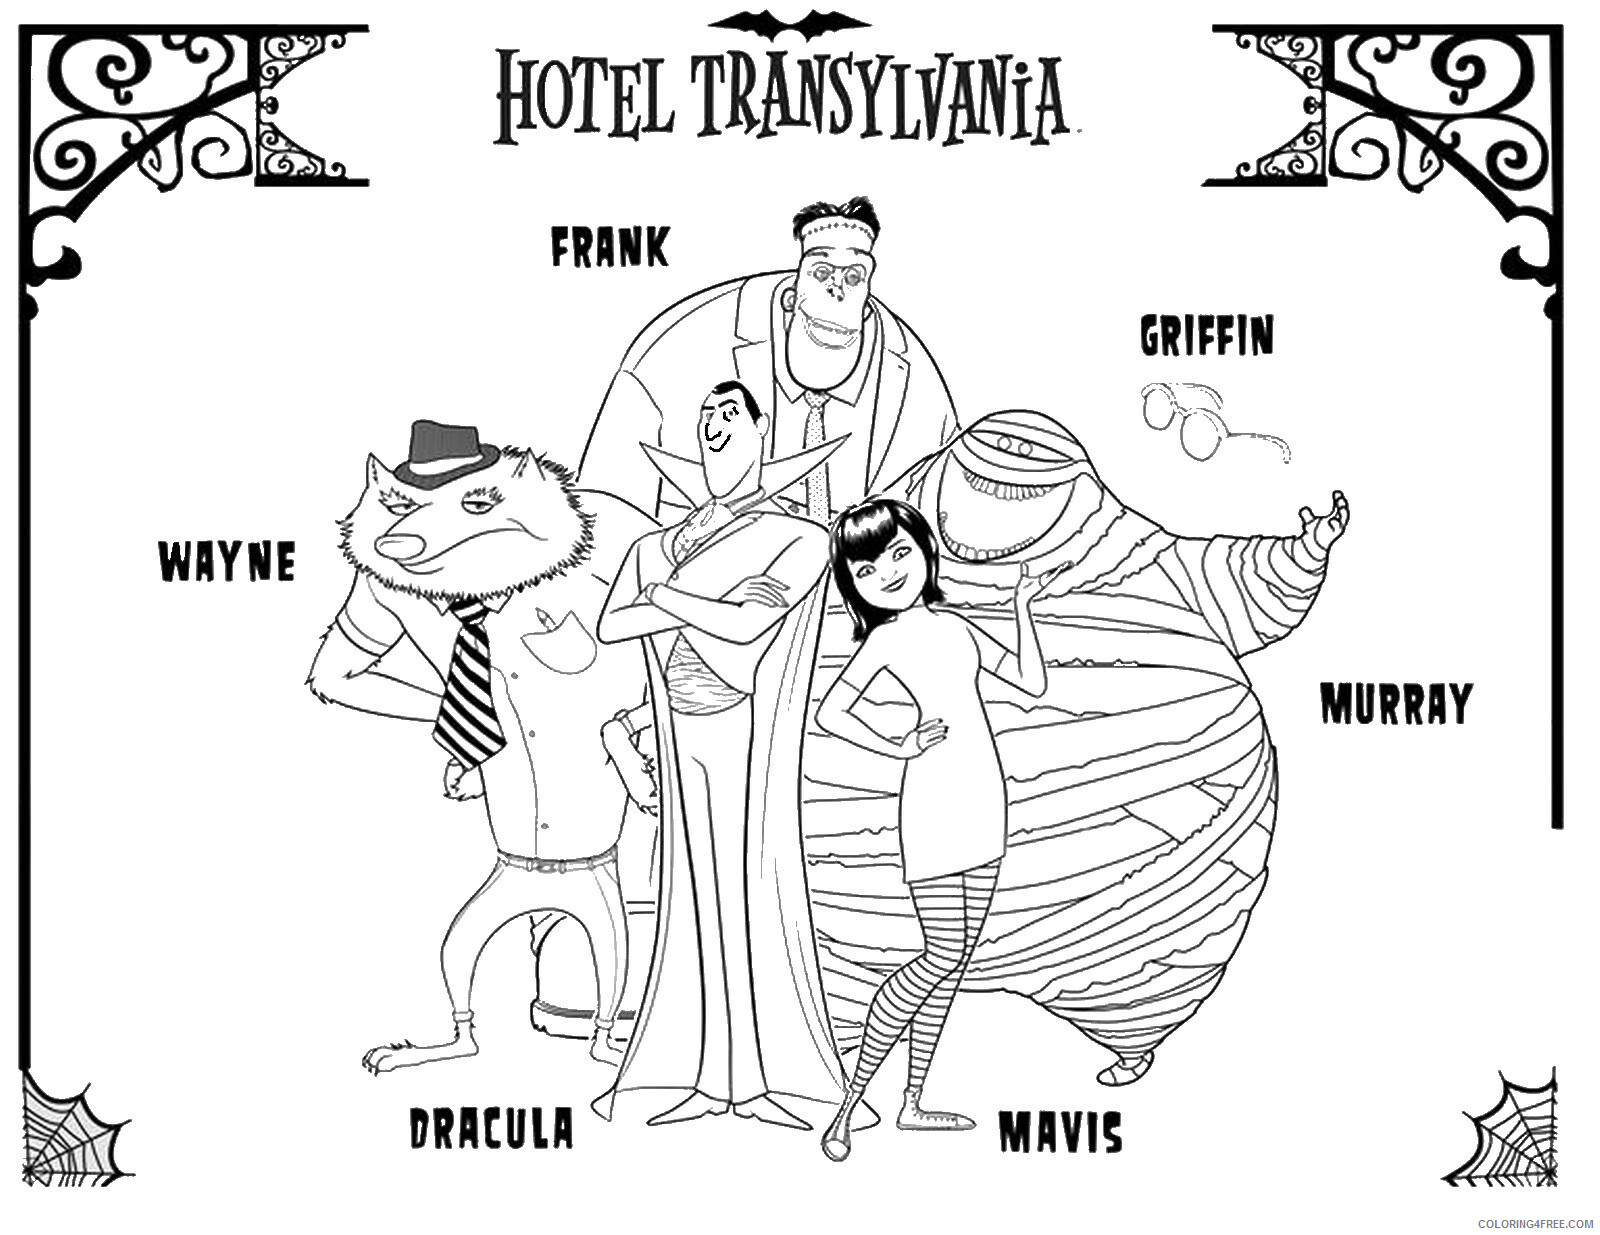 Hotel Transylvania Coloring Pages Tv Film Hotel Trans Cl 009 Printable 2020 03803 Coloring4free Coloring4free Com